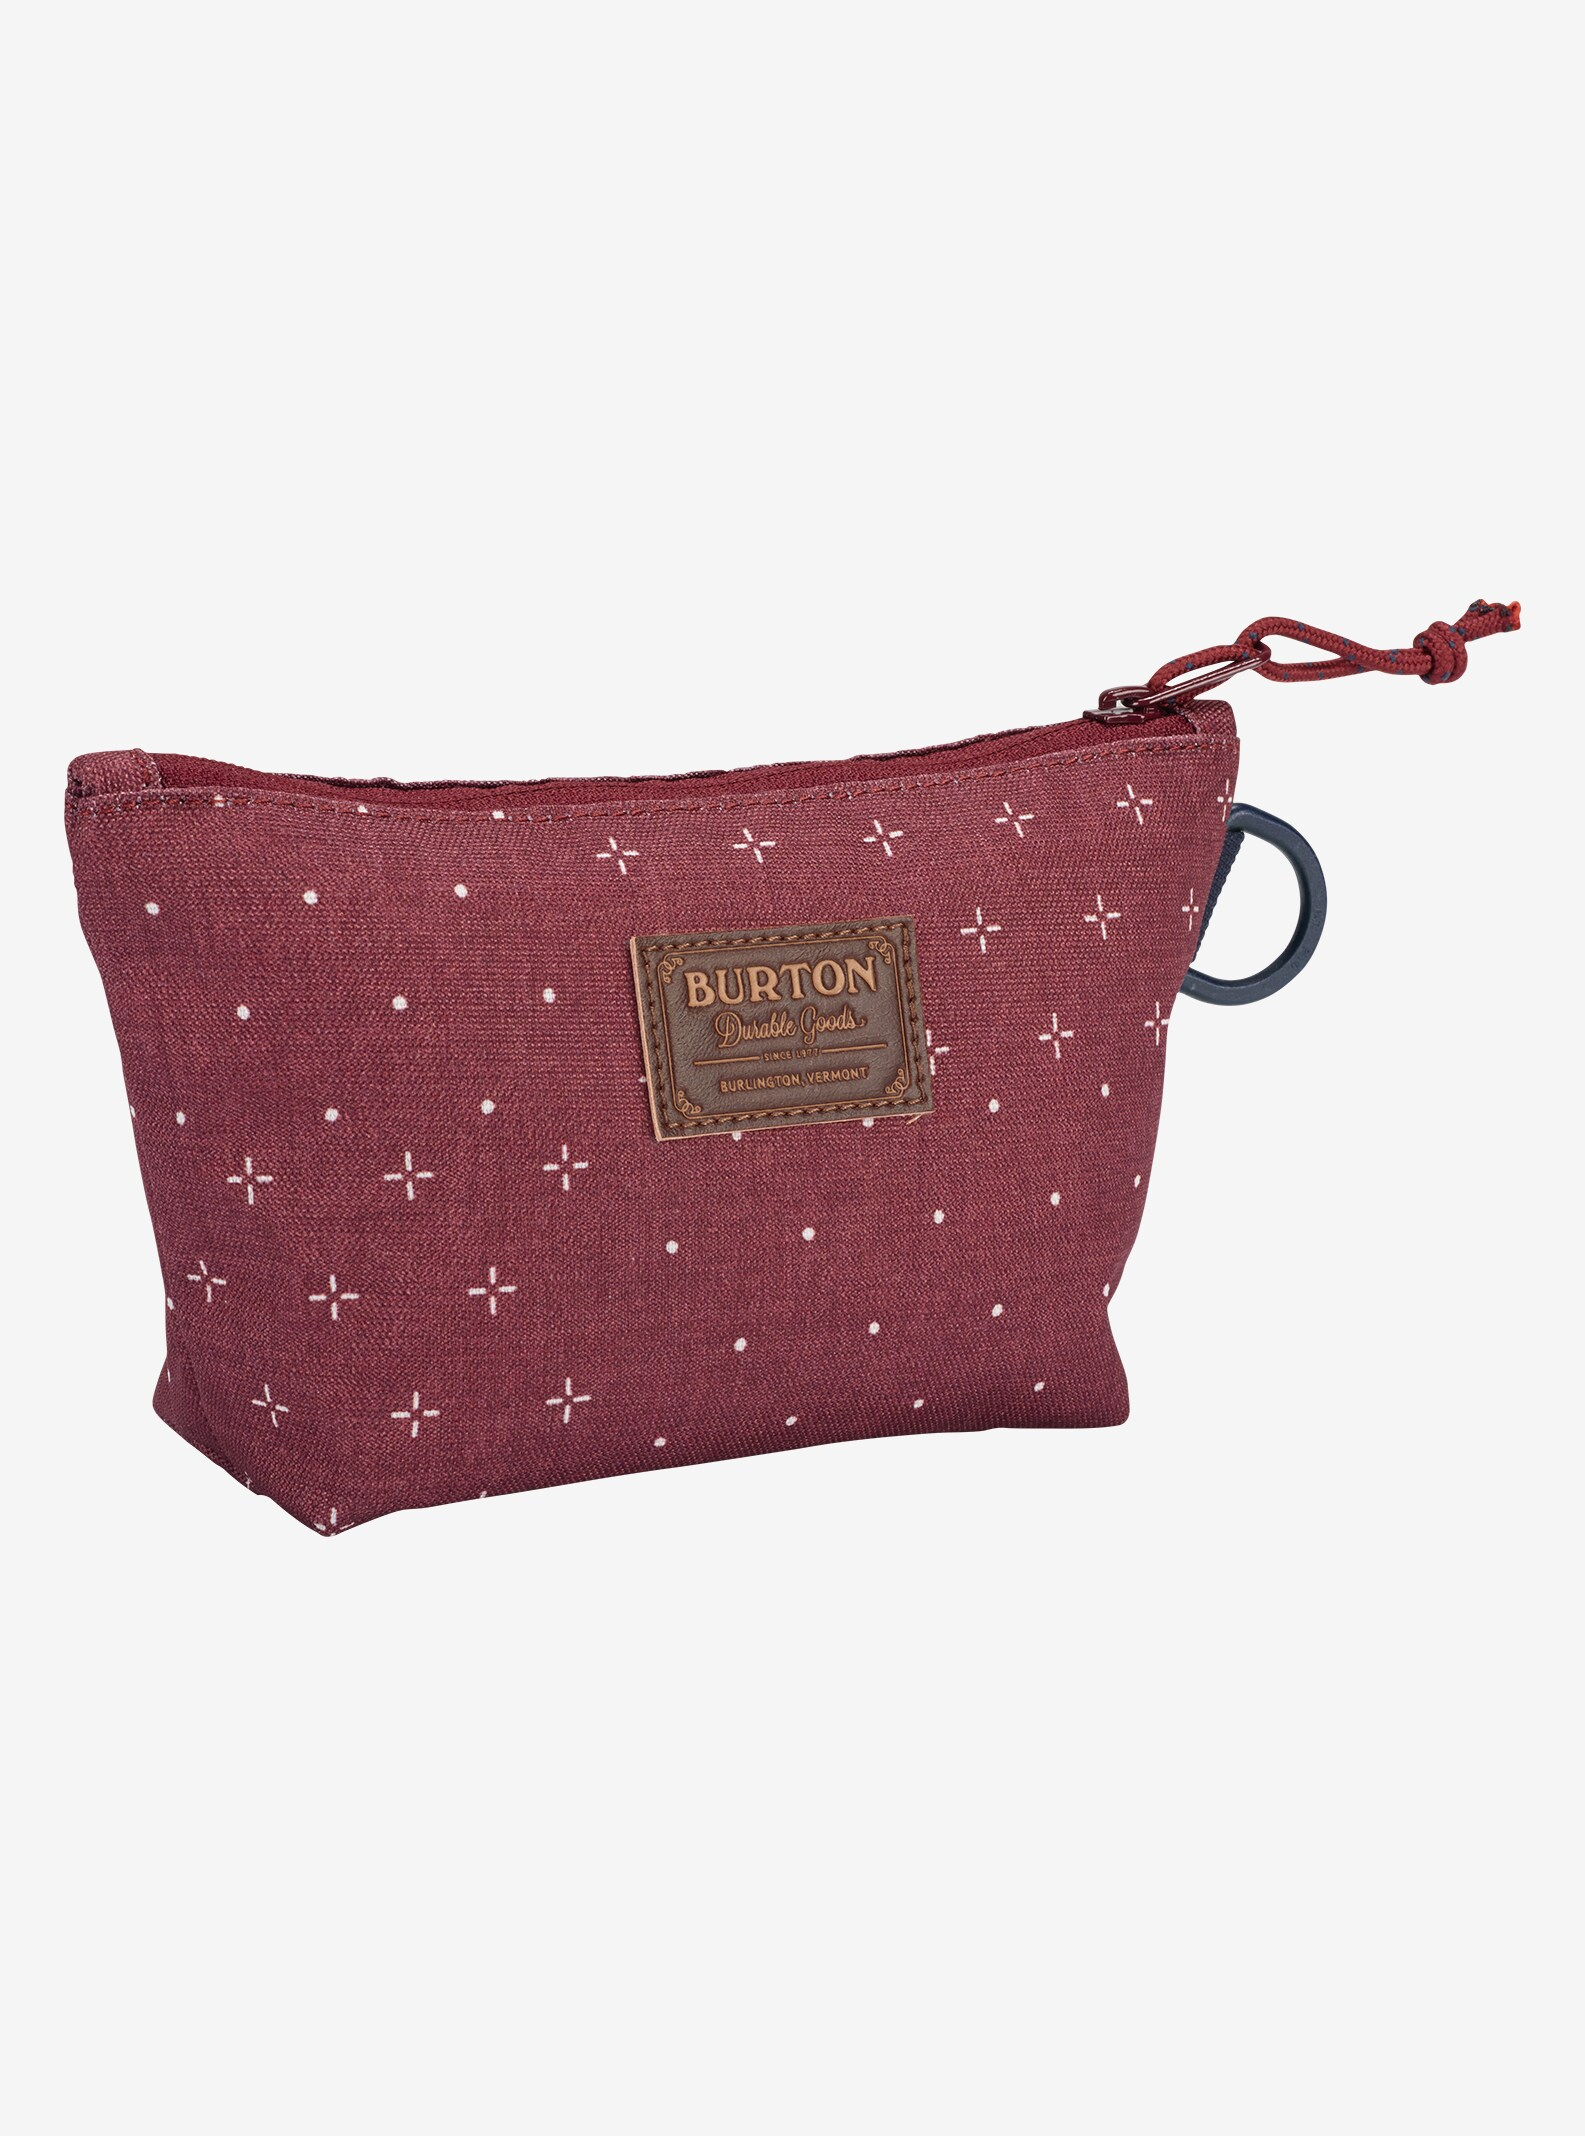 Burton Utility Pouch Small shown in Mandana Print